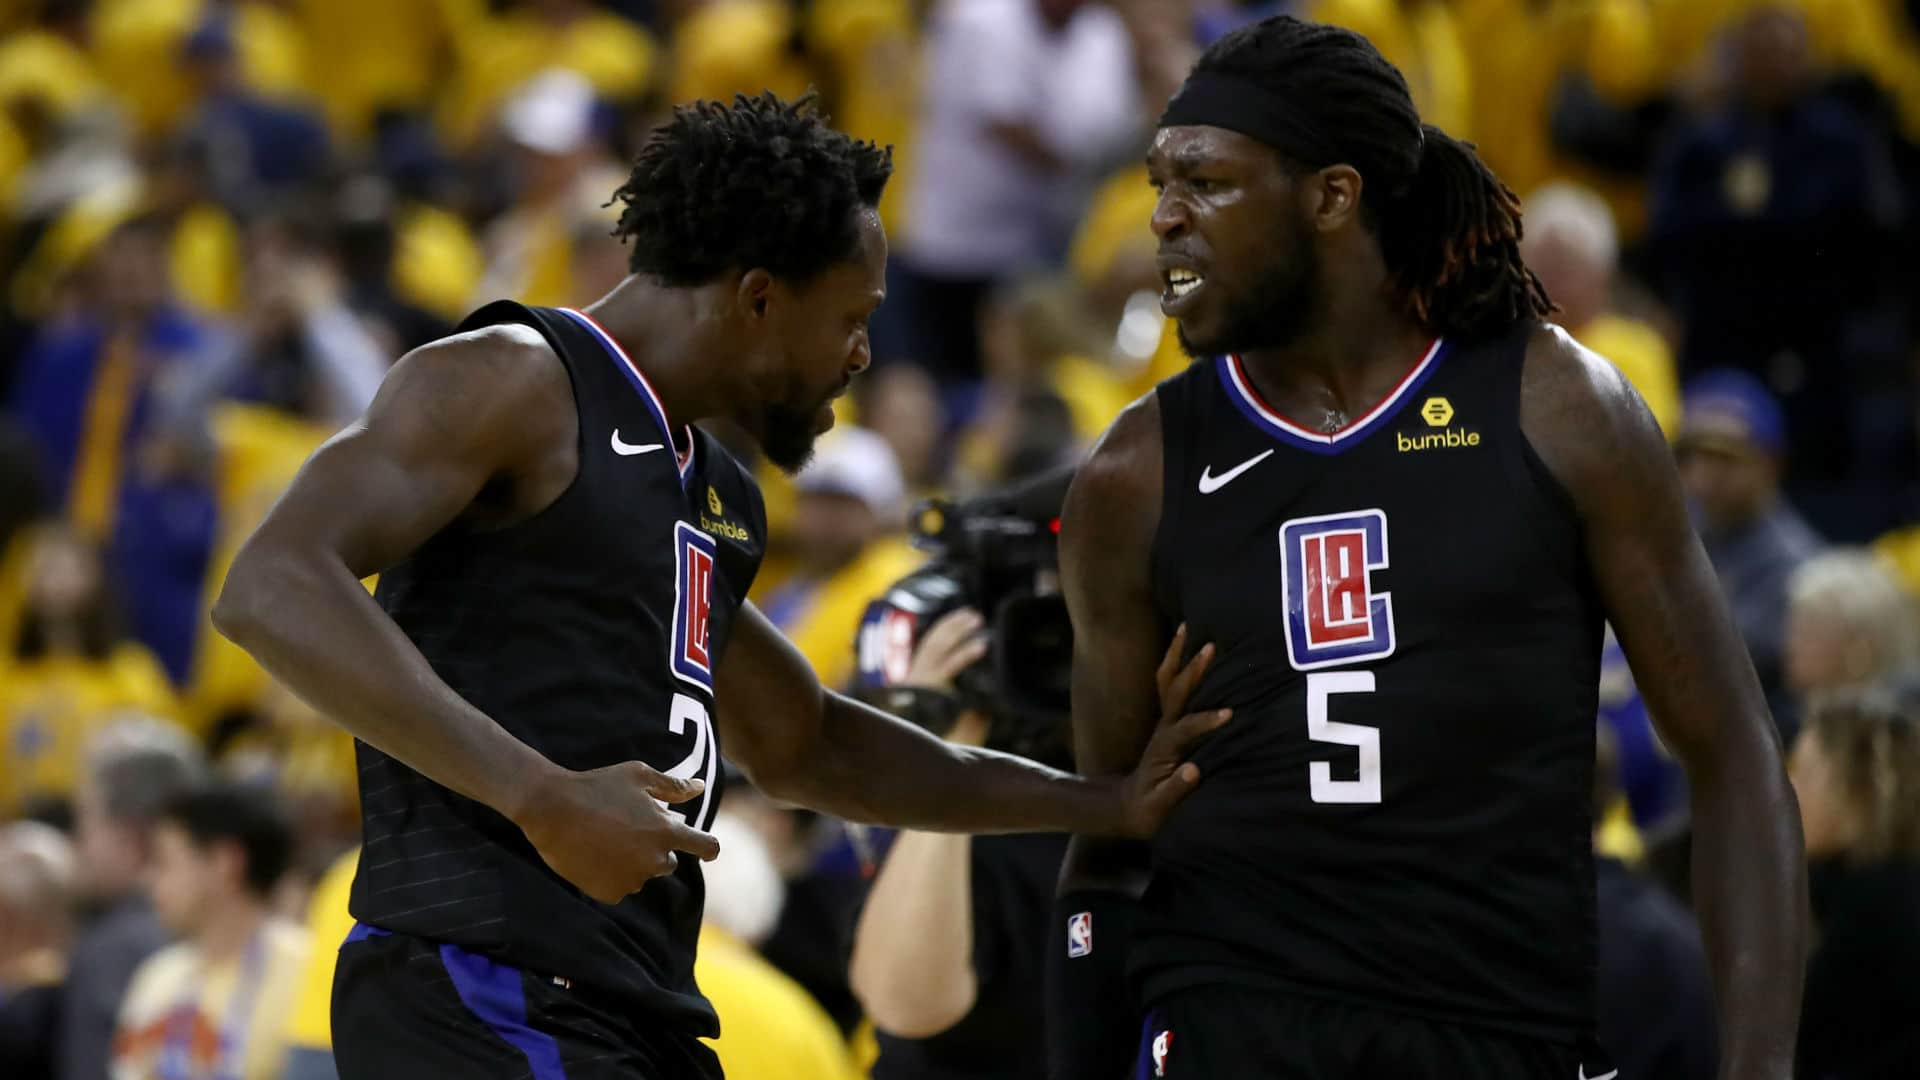 patrick-beverley-twitter-react-to-montrezl-harrell-leaving-clippers-for-lakers.jpg